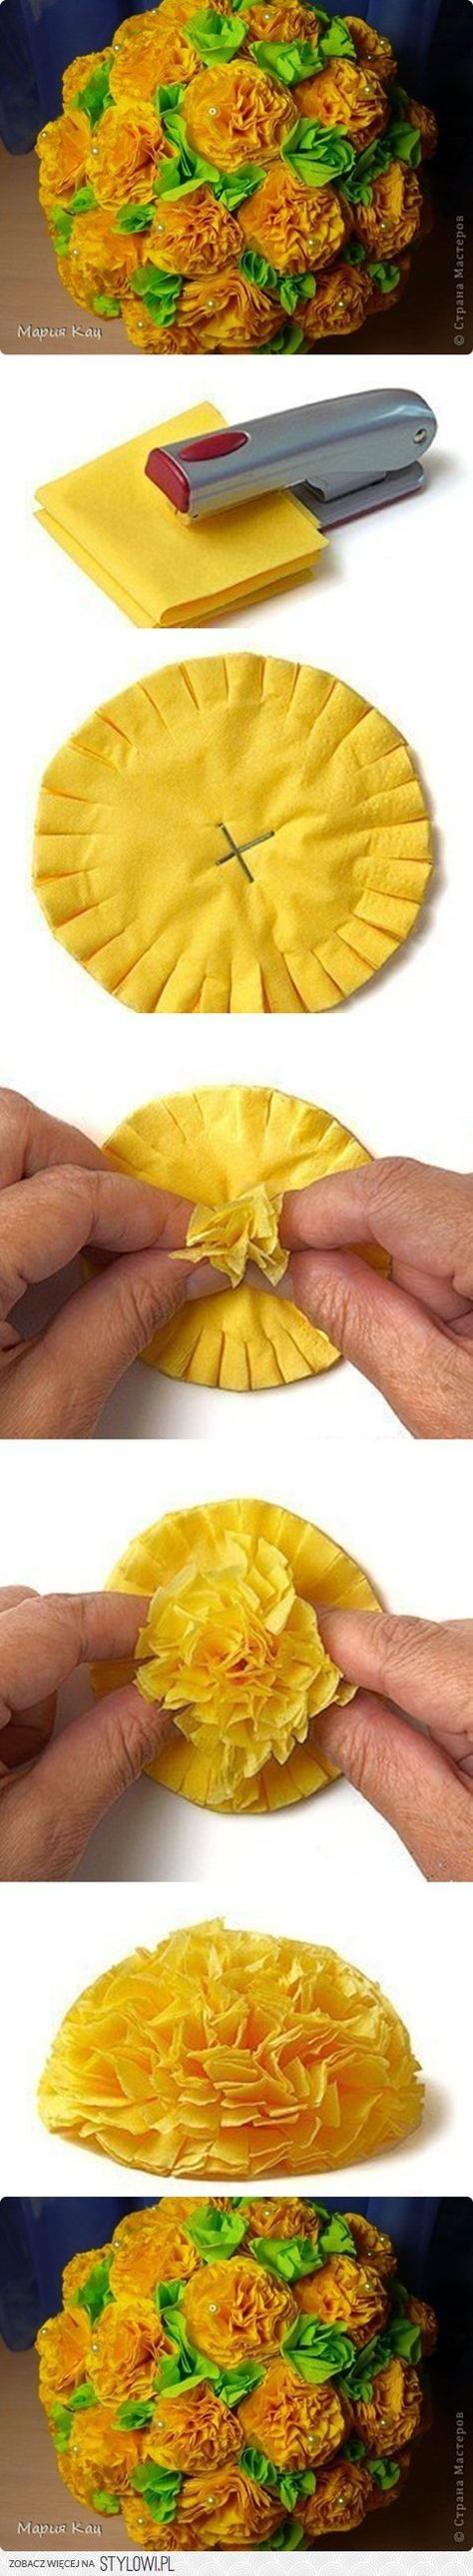 paper flower photo tutorial: crepe paper ... used to cover a styrofoam ball ... great party deco idea ...